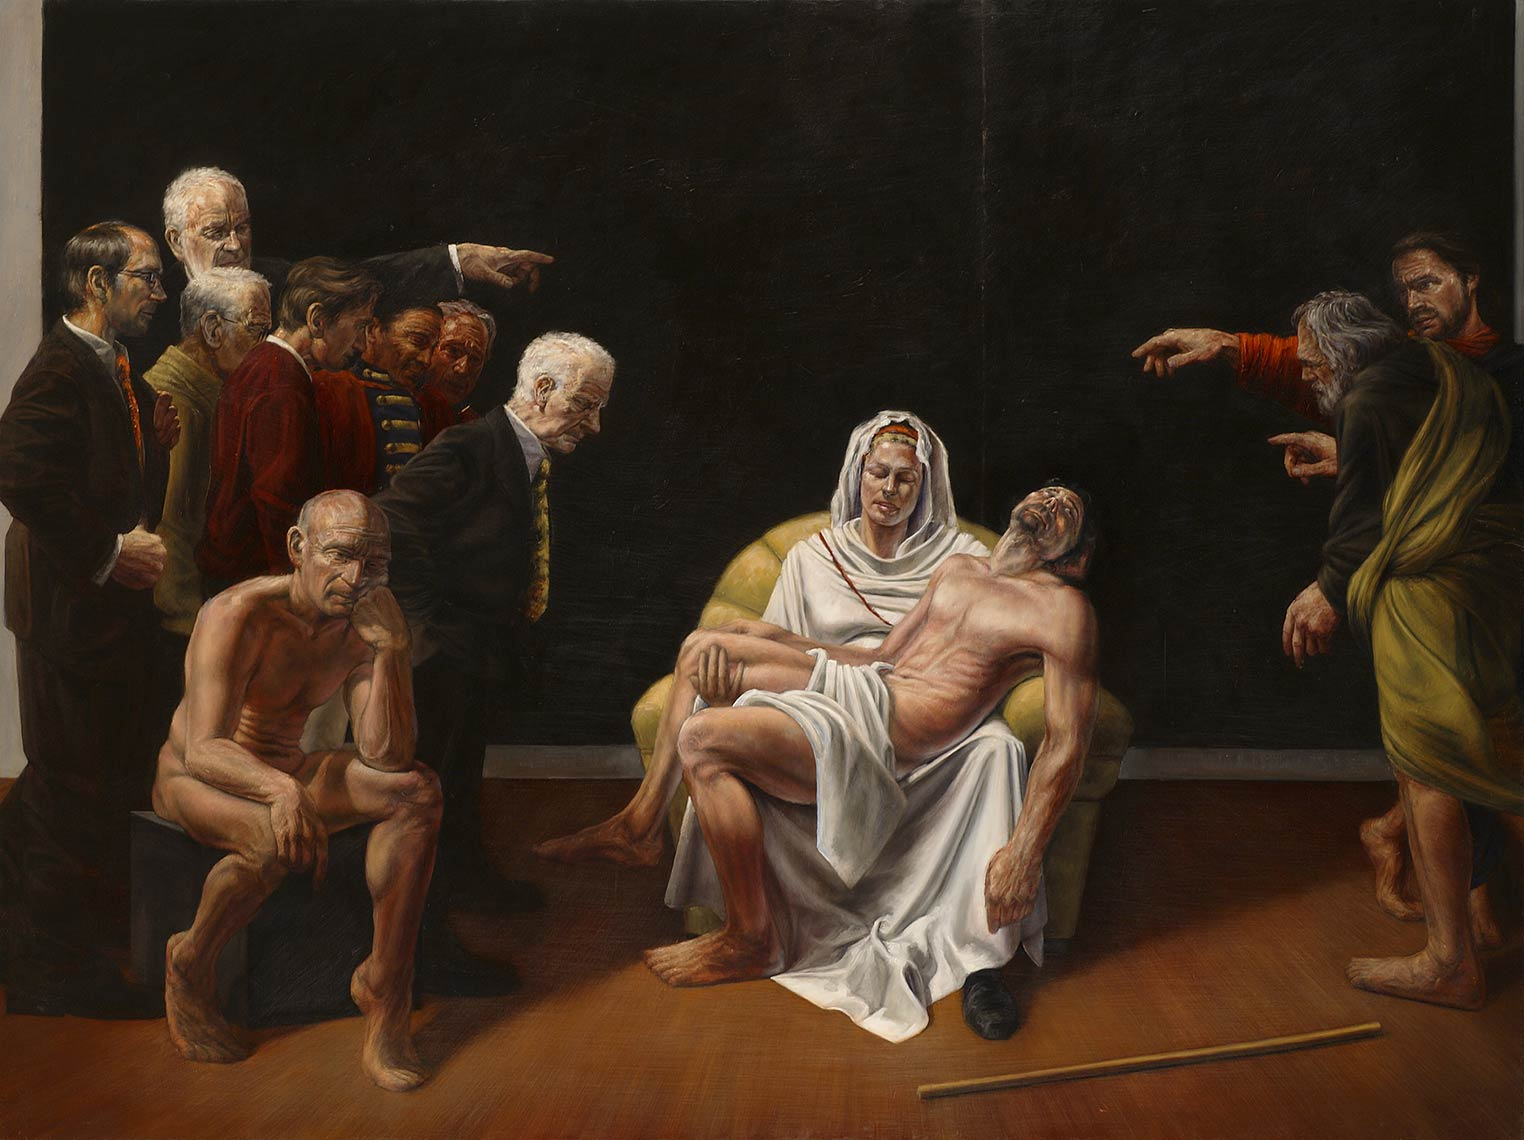 Apologia-Historia-Europa_2009_oil-on-canvas_183x244_72x96_Available